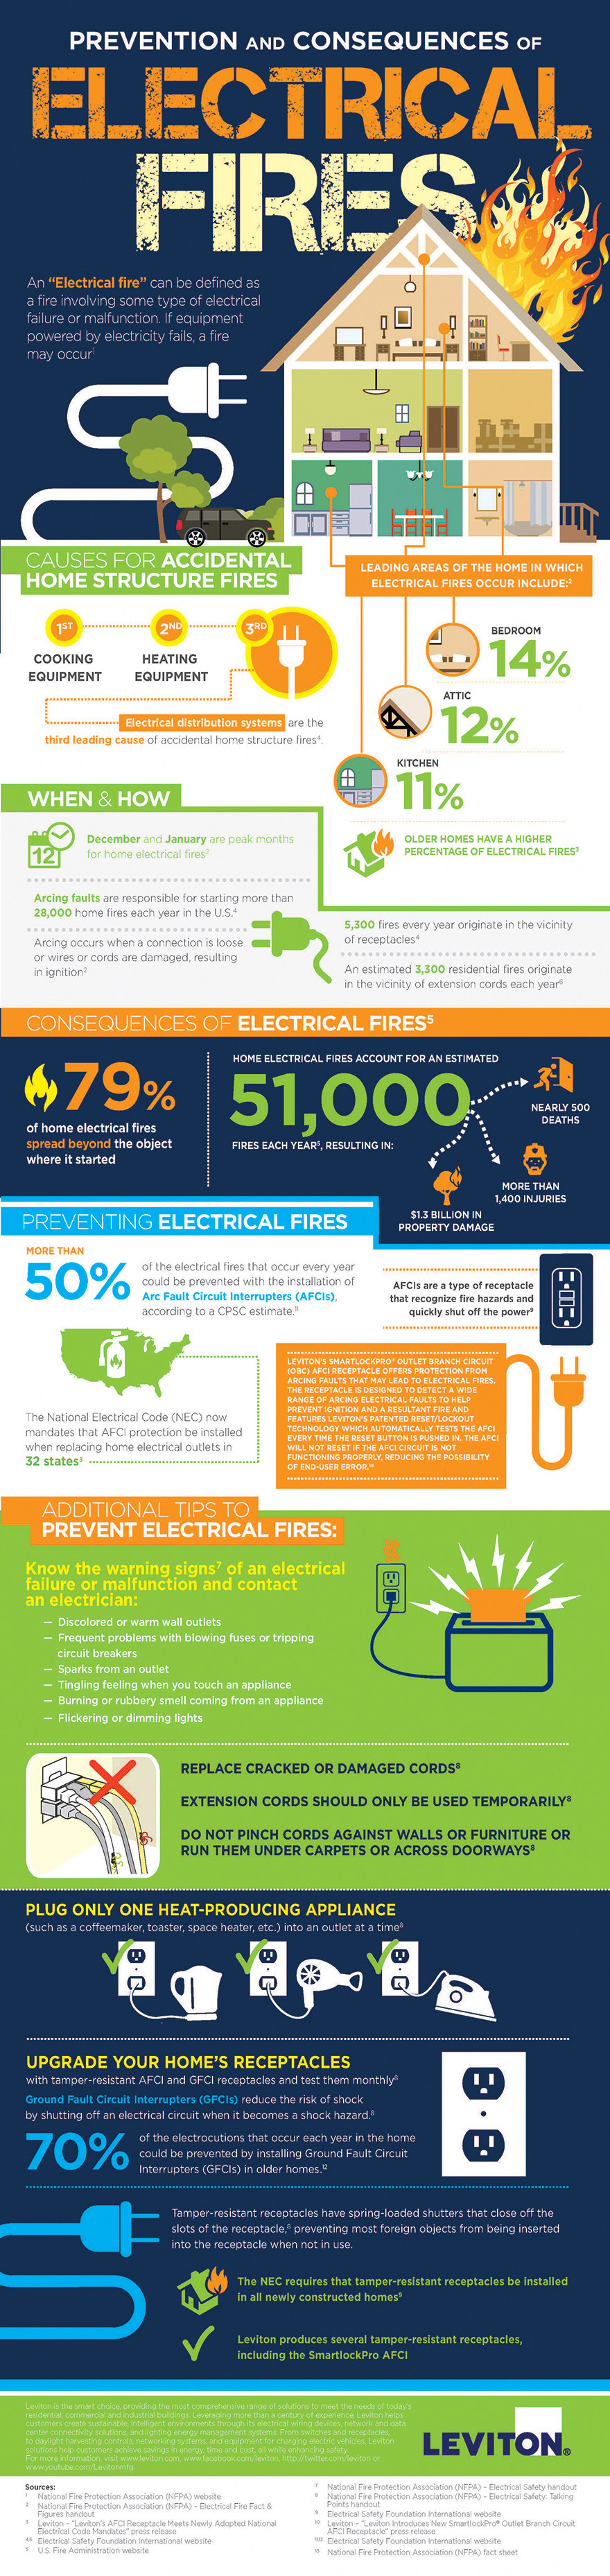 Great information from leviton on causes and prevention